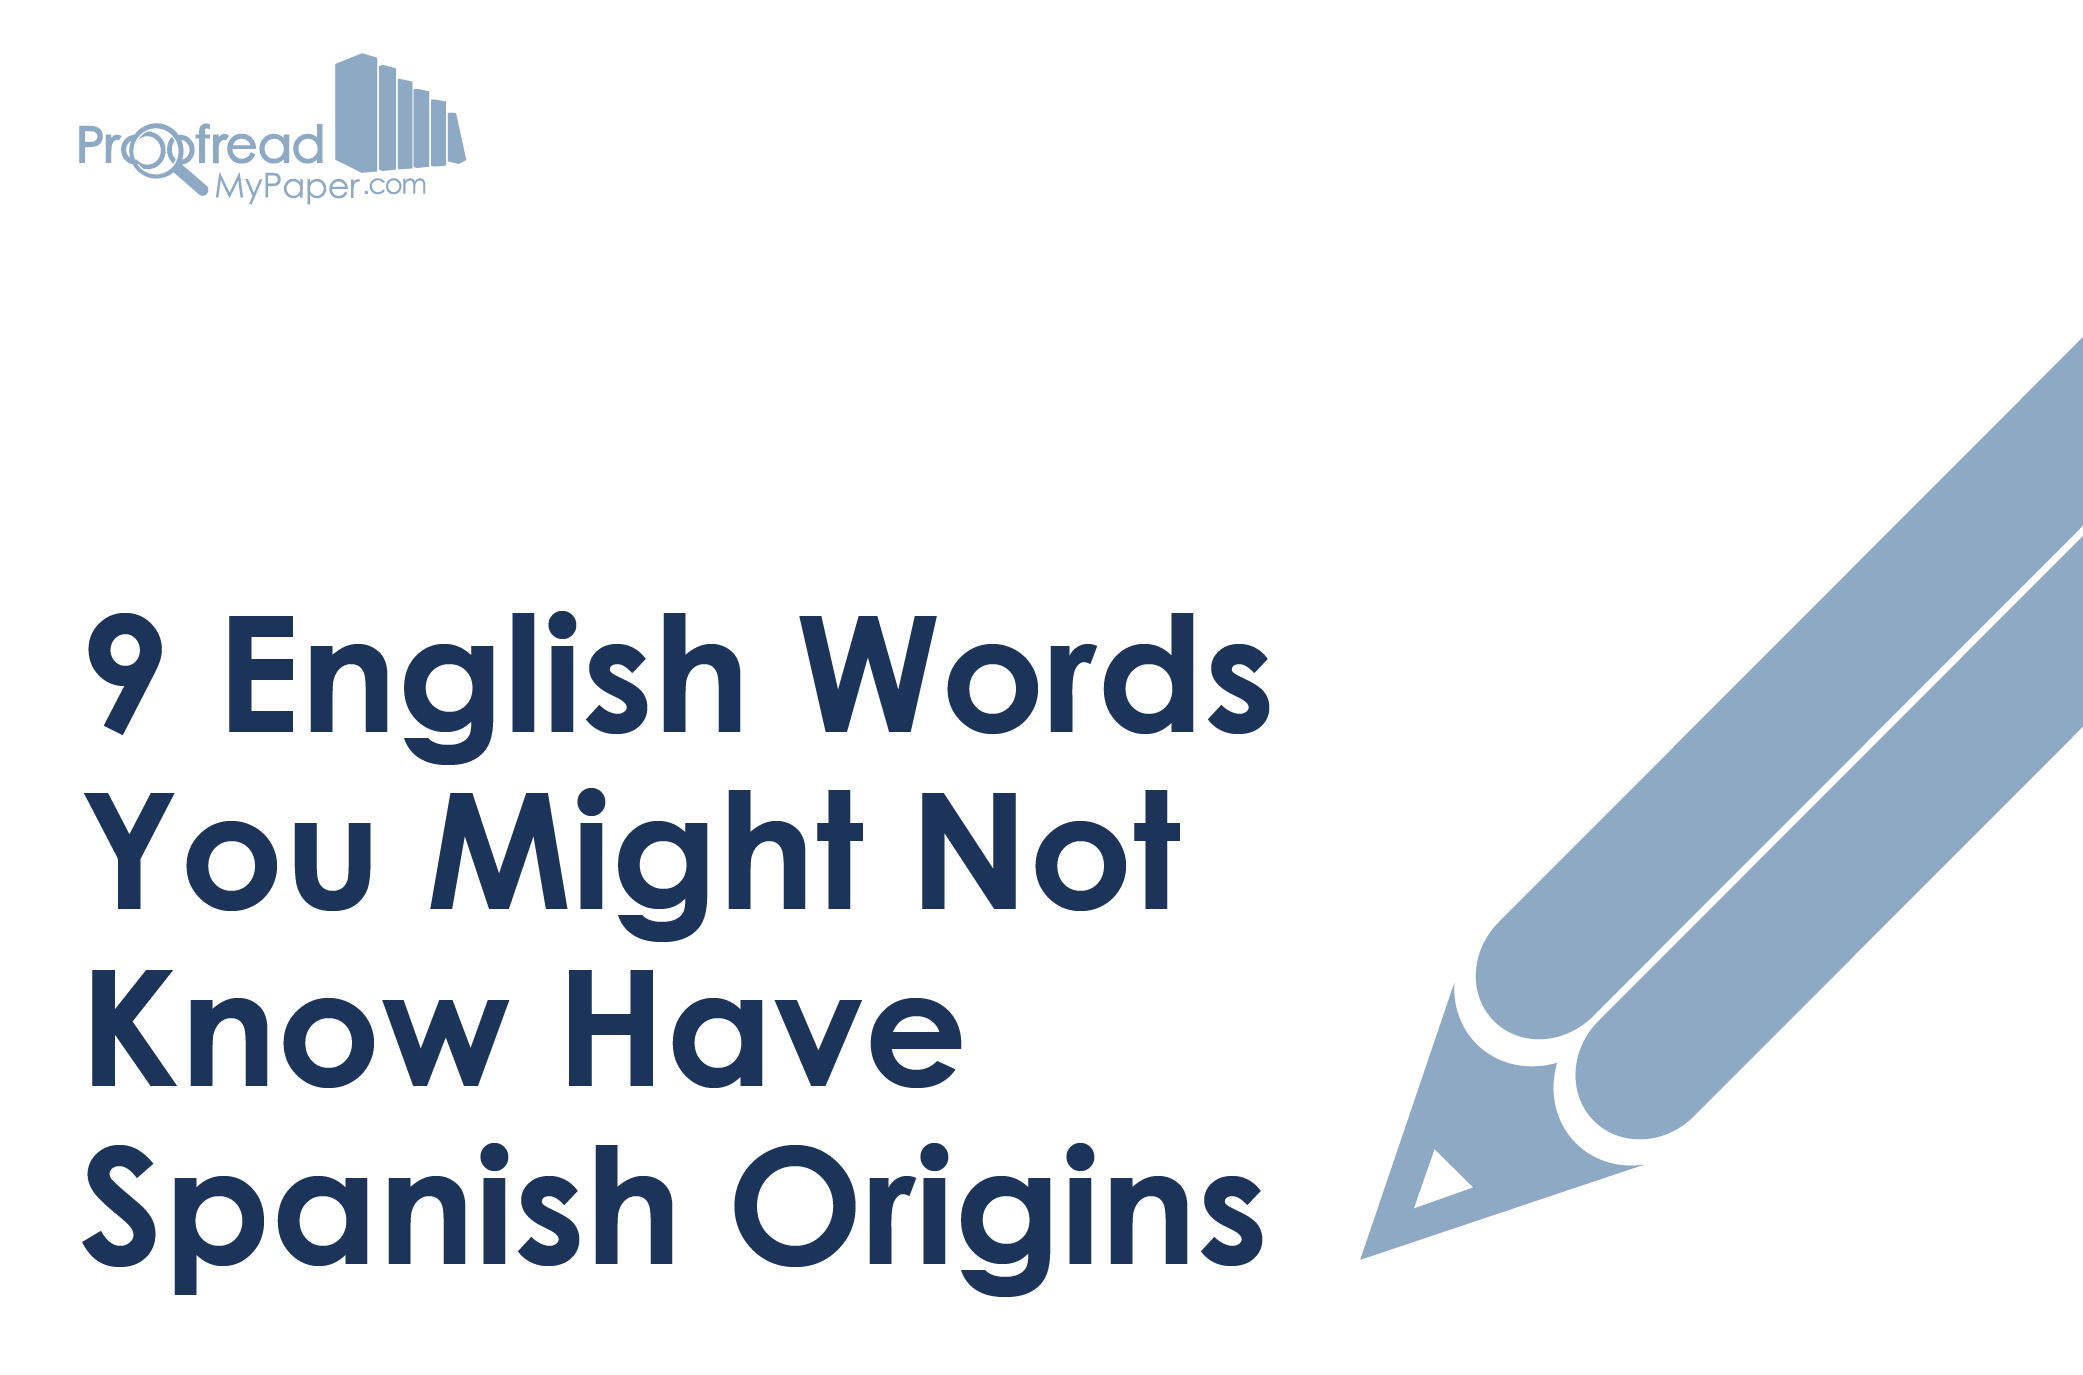 English Words You Might Not Know Have Spanish Origins